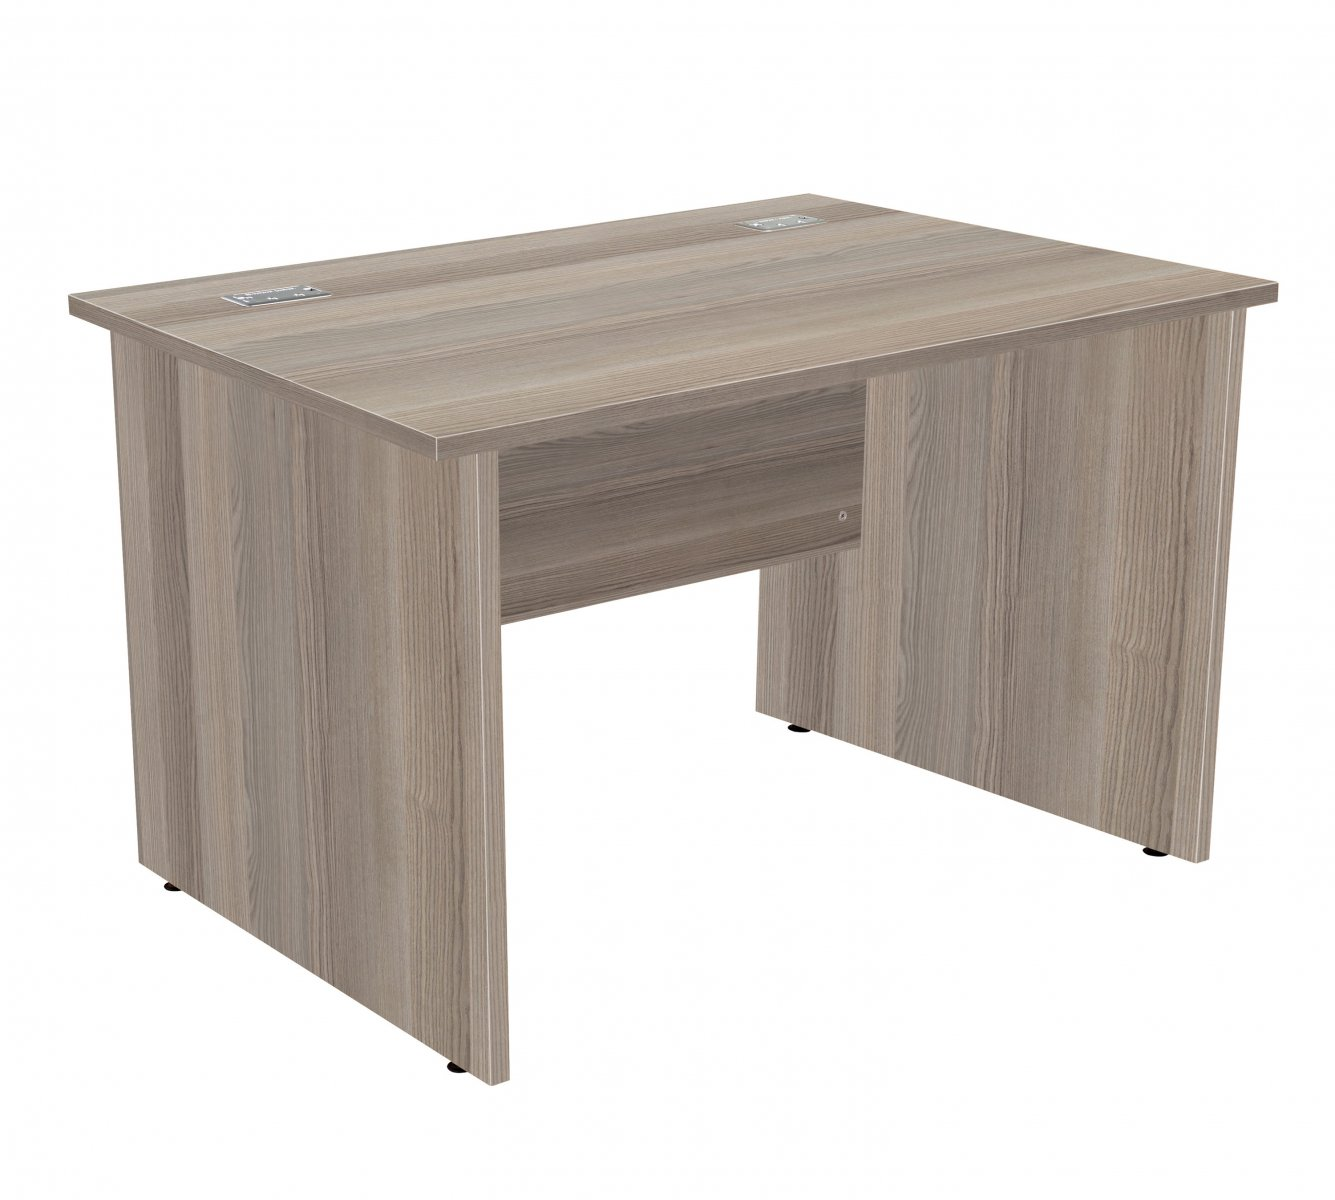 Fraction Plus Panel End Rectangular 120 Desk - Grey Oak